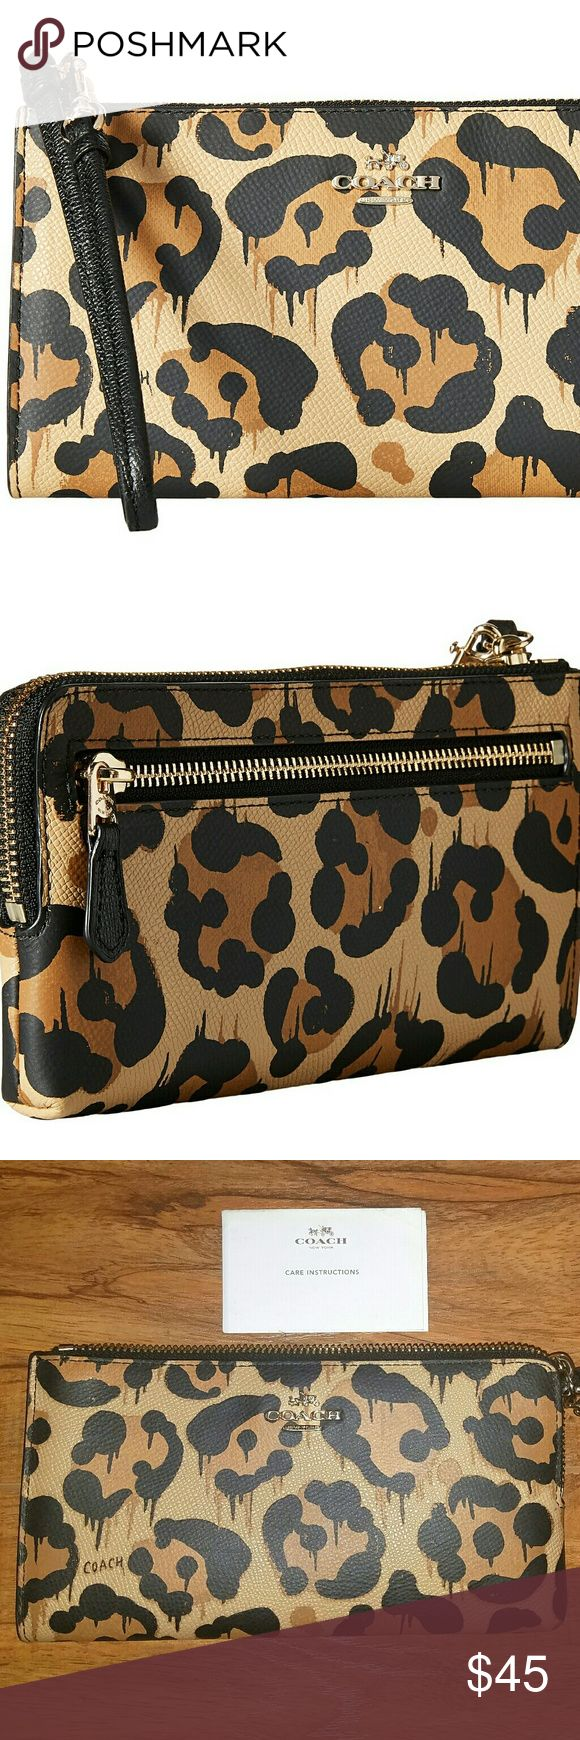 Women's Brown Leopard Ocelot Print Zip Wallet Authenticatic Coach leather wrislet wallet, used but in awesome condition. This handcrafted accessory was designed to hold small electronics like iPhone Samsung Galaxy and other mobile devices. Hard to find only a few out there. The perfect wallet for the bold fun-loving gal. Coach Bags Clutches & Wristlets